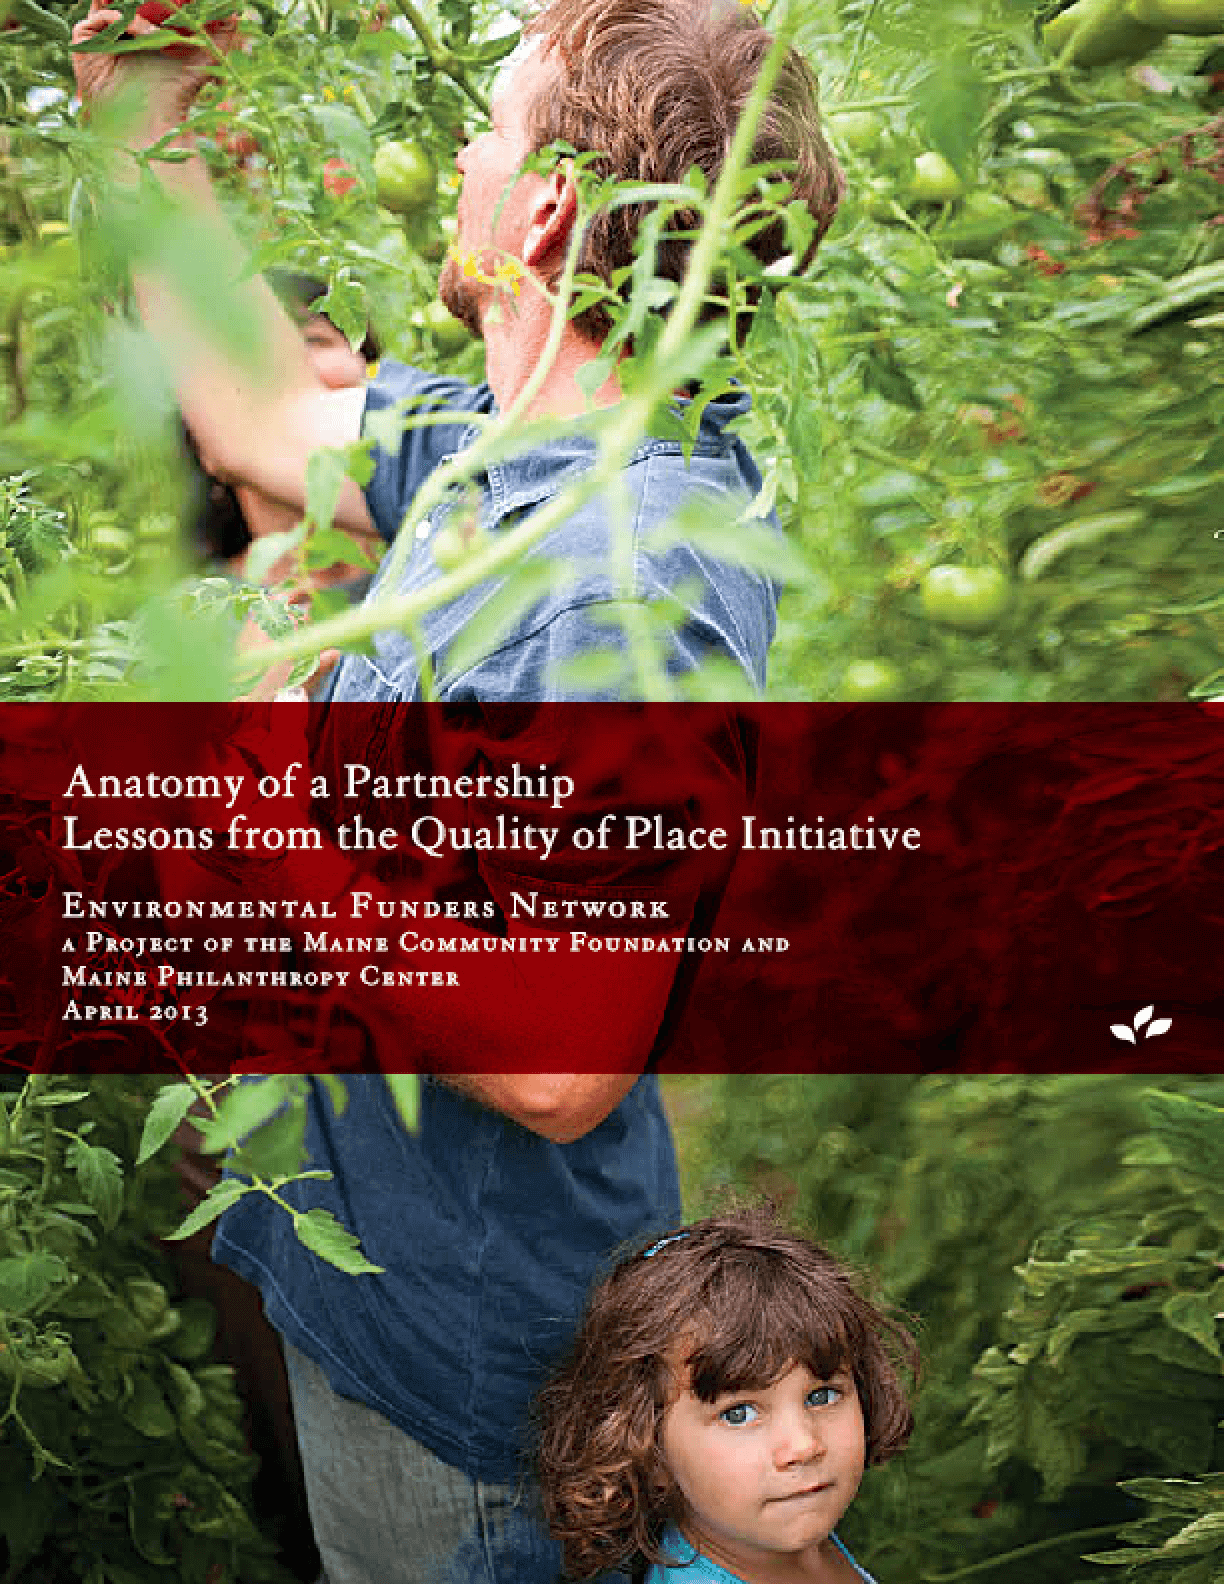 Anatomy of a Partnership: Lessons from the Quality of Place Initiative